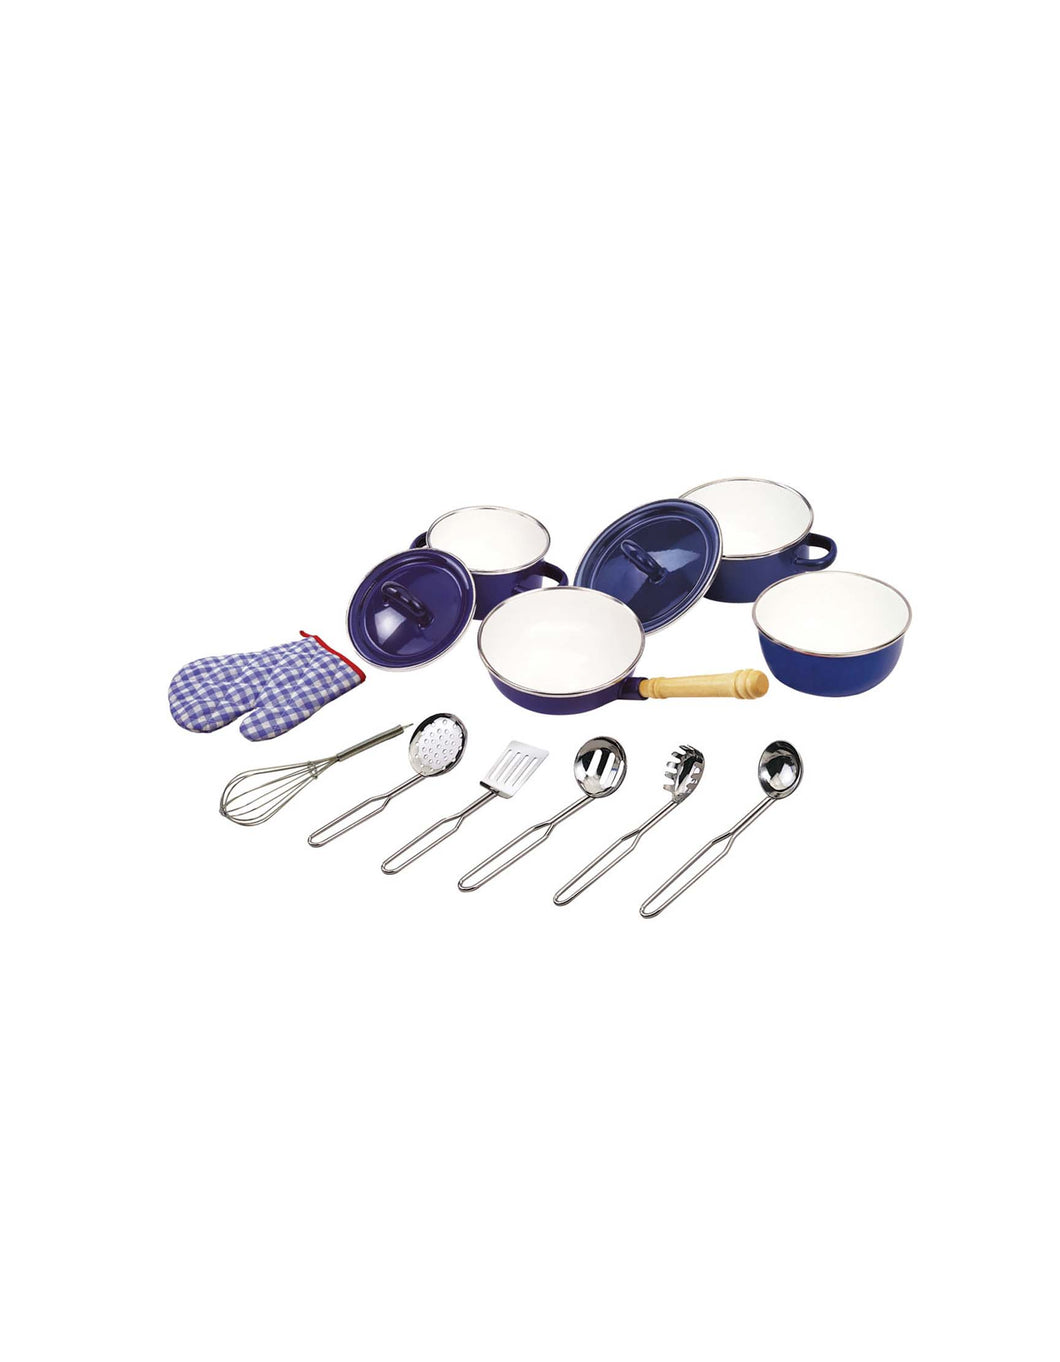 Kitchenware Set in Blue